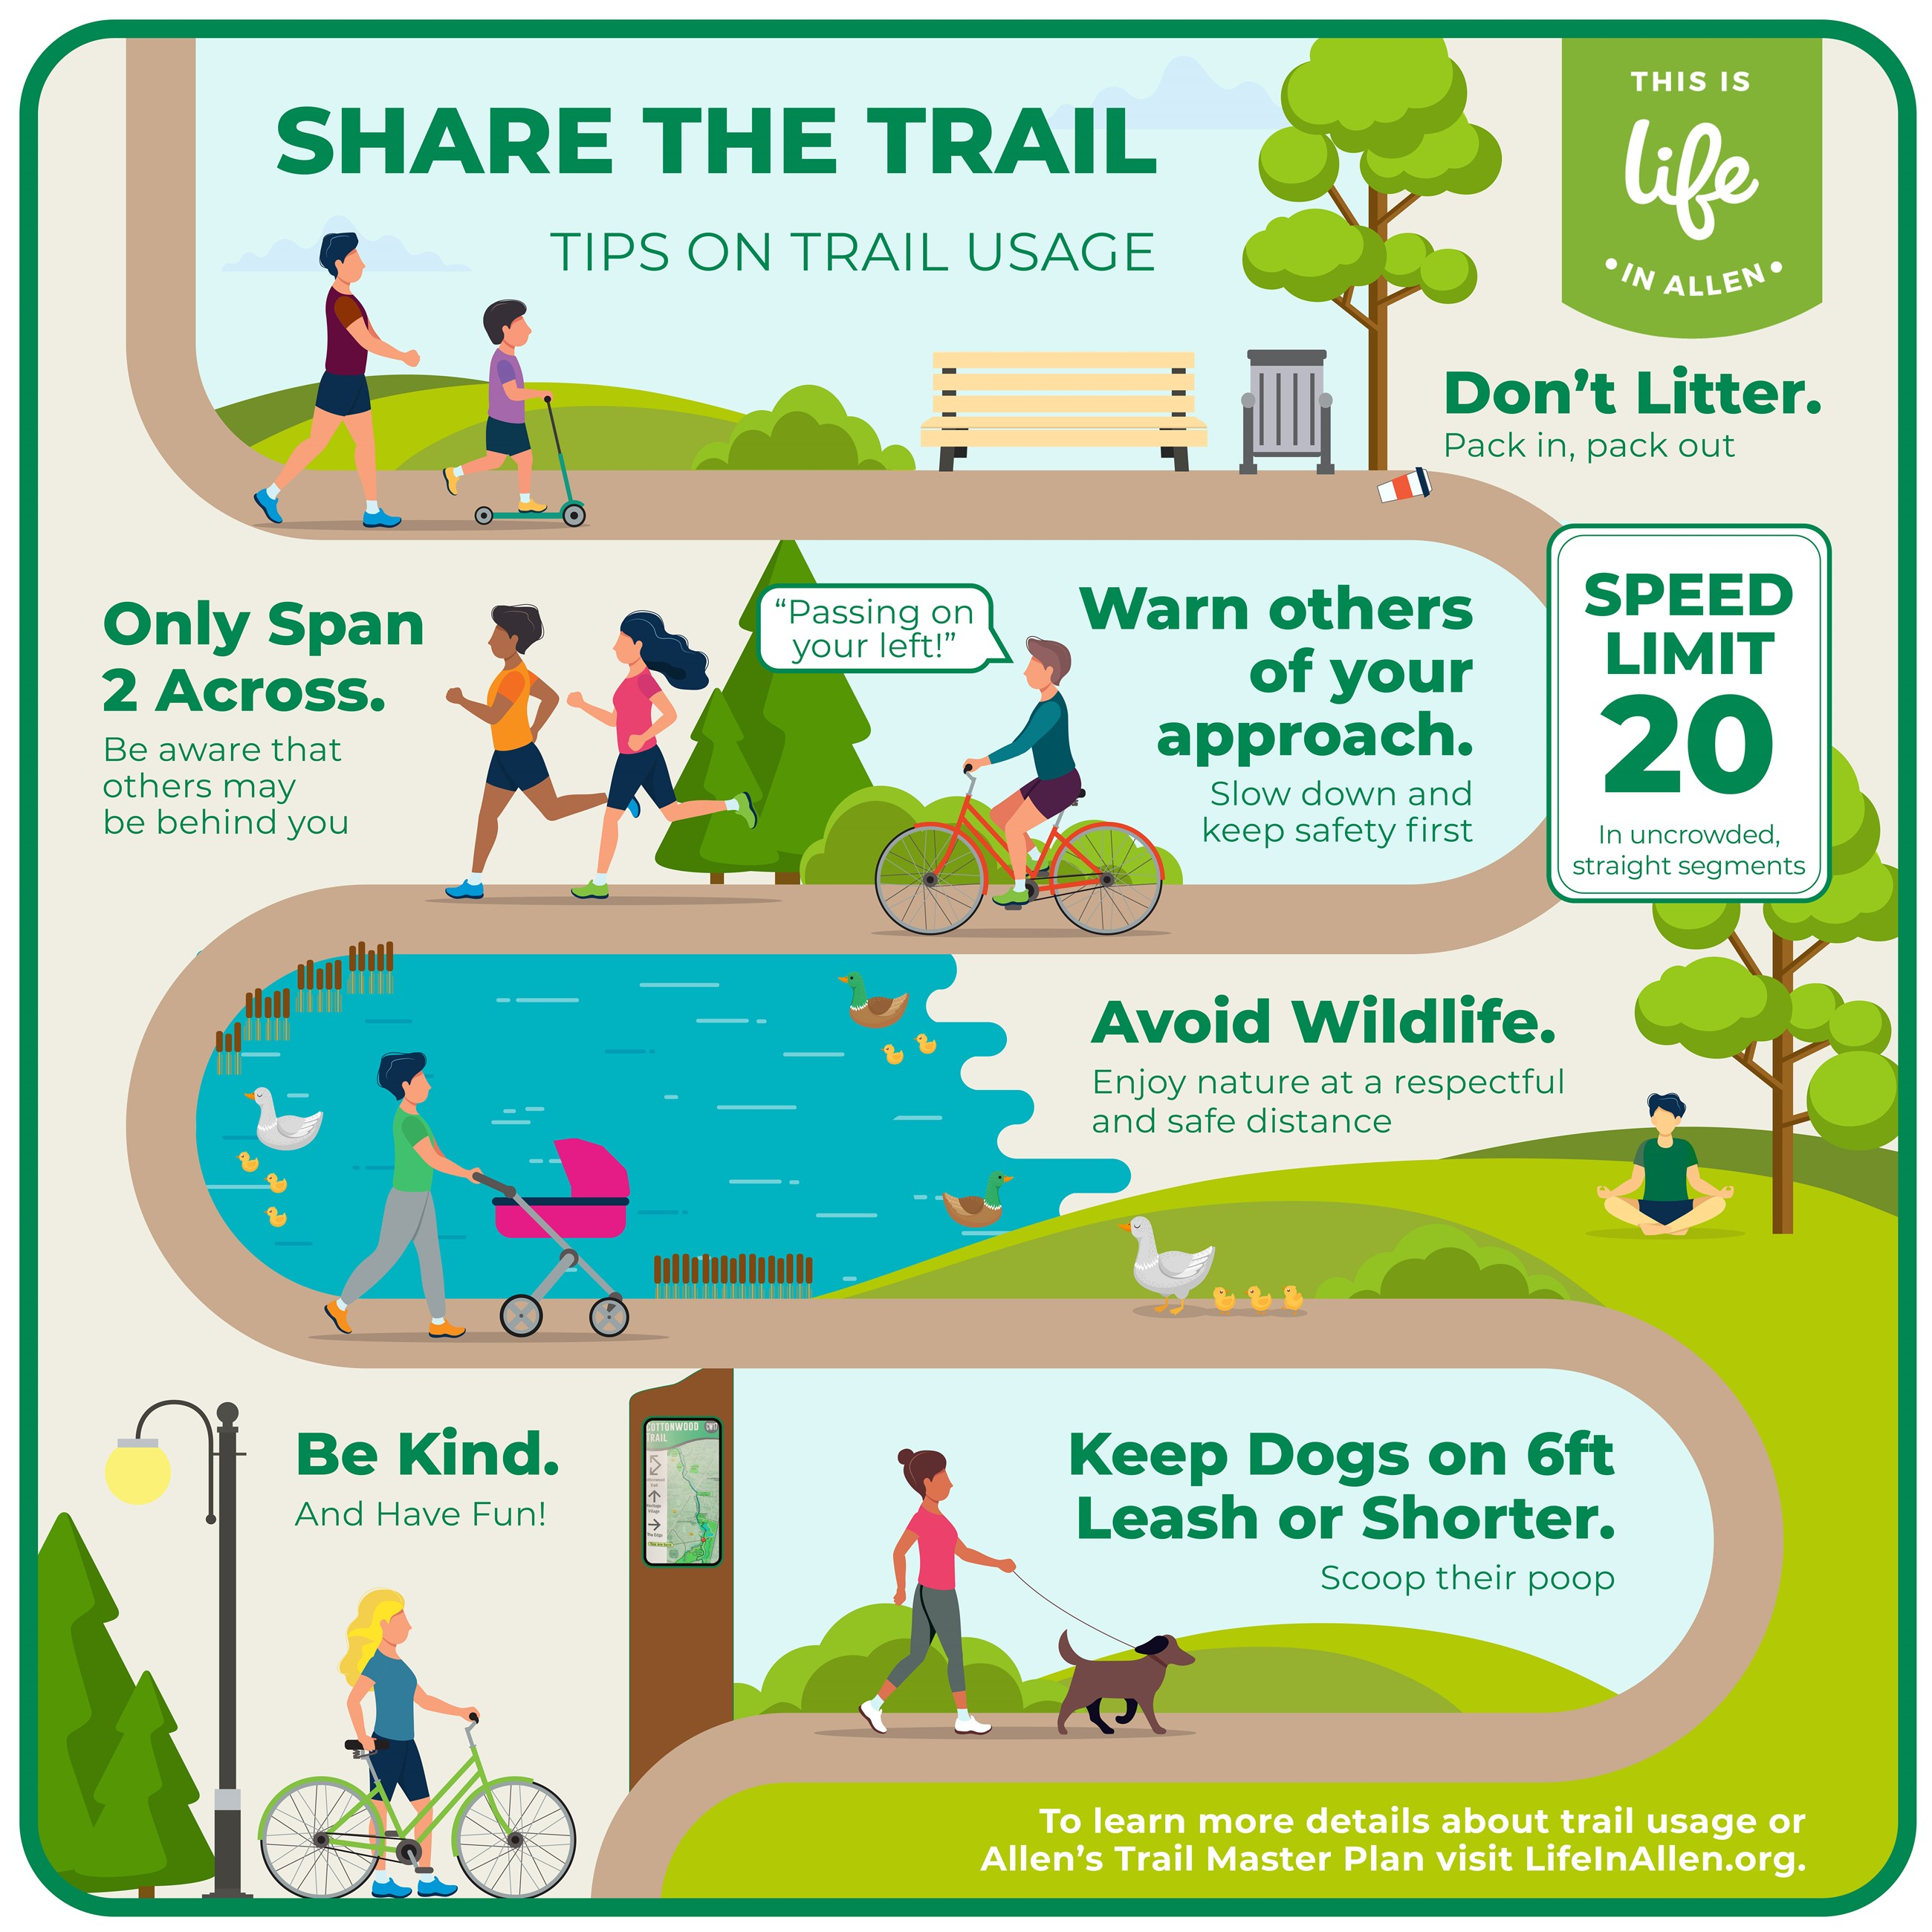 Share the Trail infographic